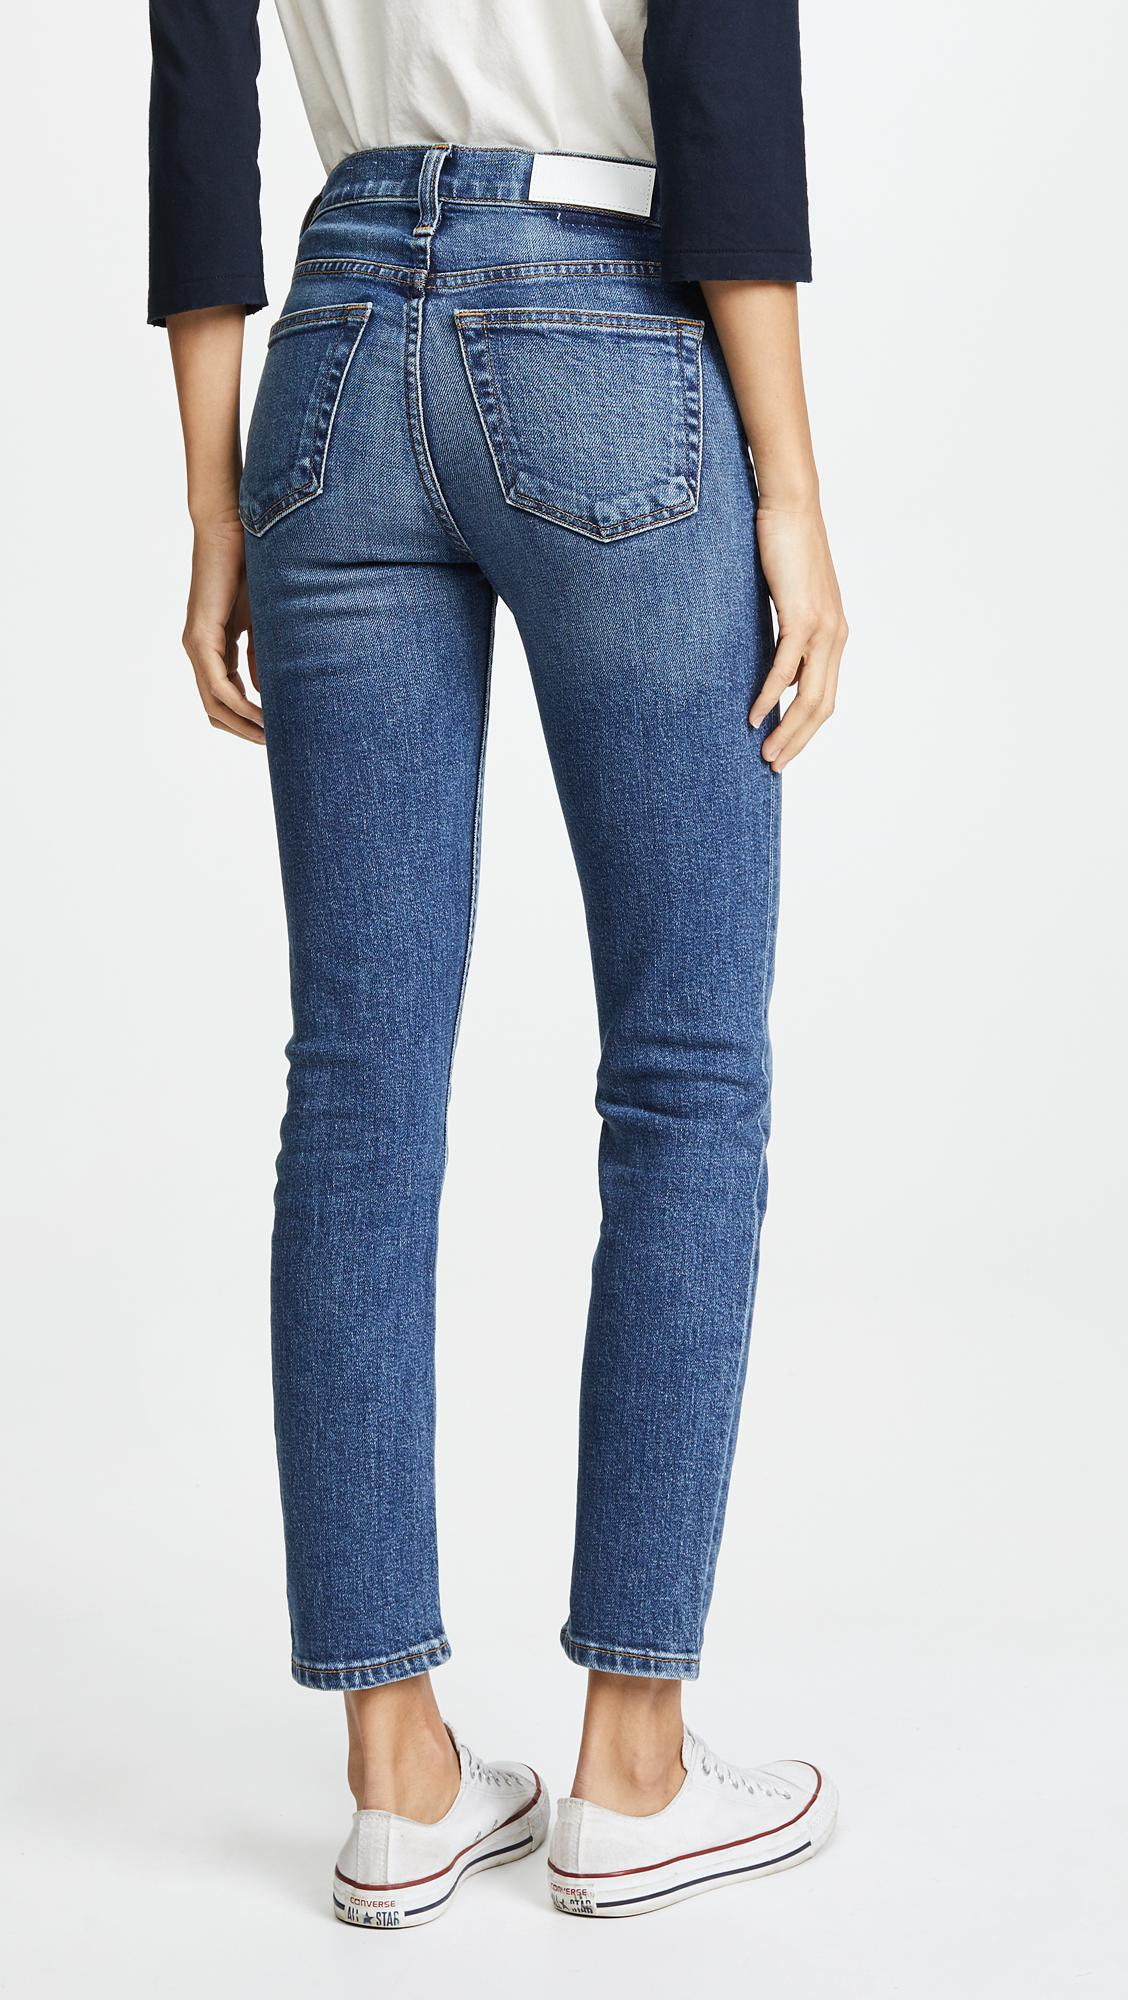 RE/DONE Denim High Rise Ankle Crop Jeans in Mid '70s (Blue)